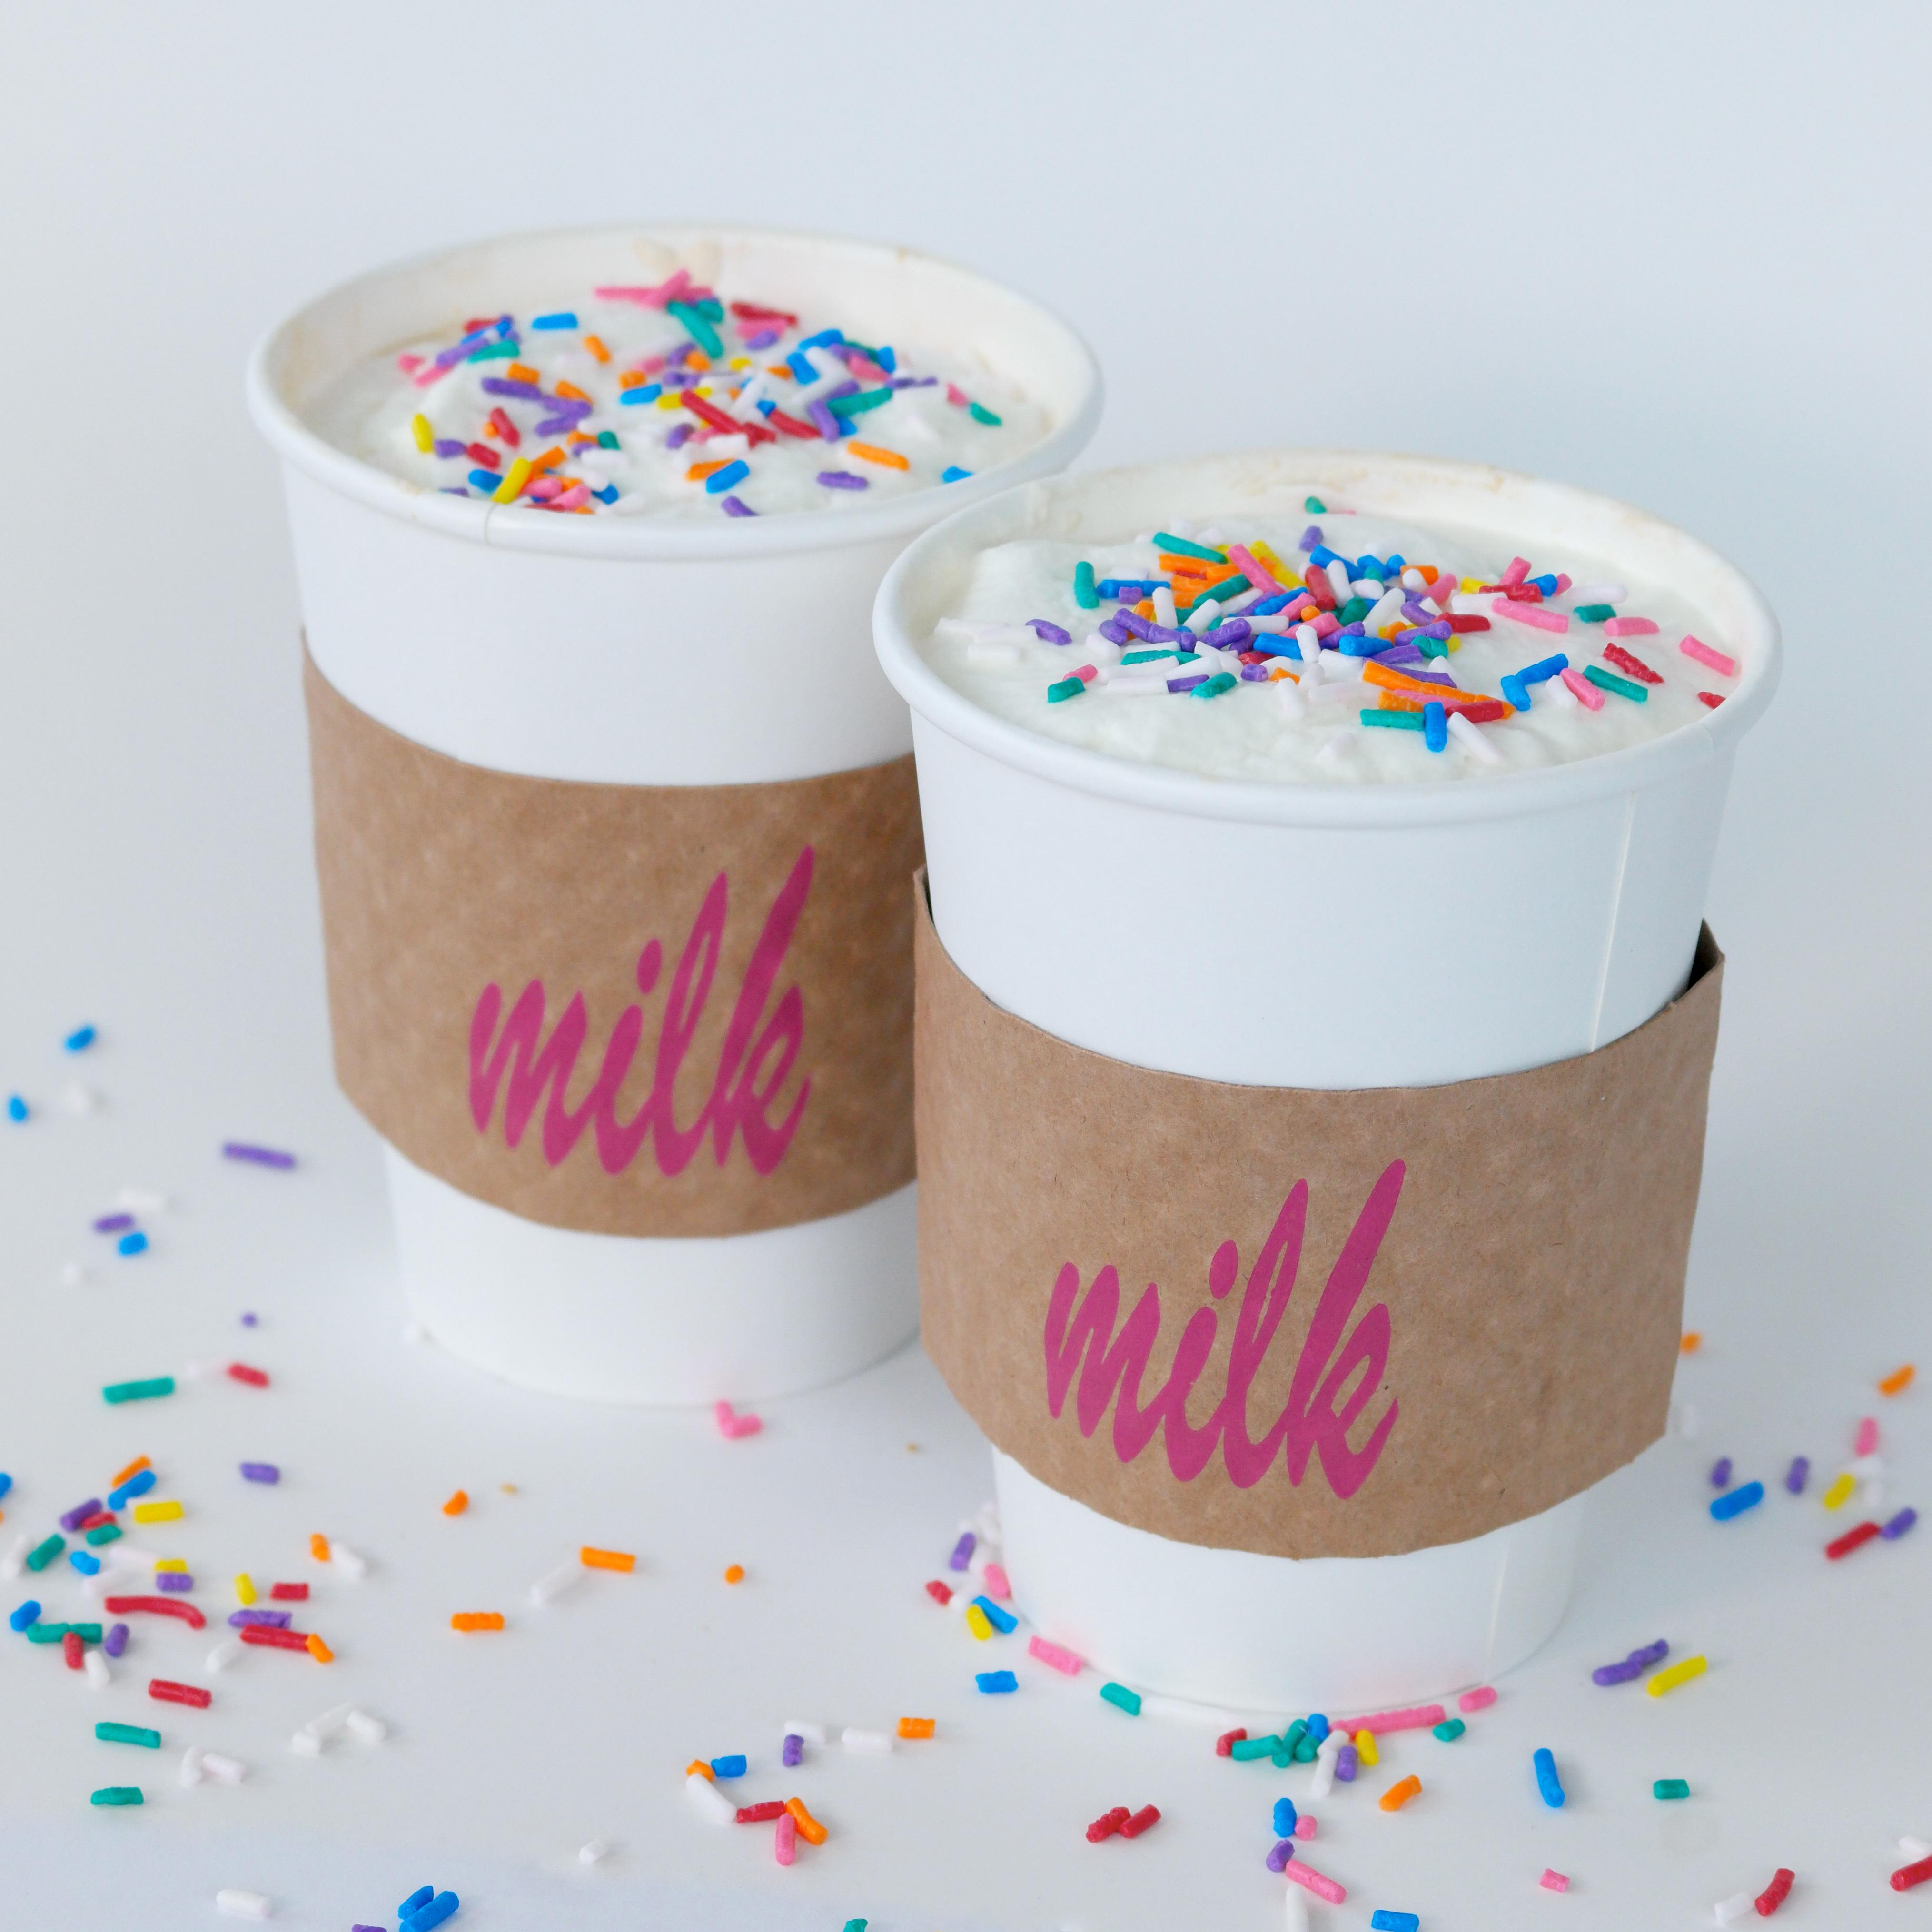 <p>The Cereal Milk Latte is espresso with steamed cereal milk; the Crack Pie Latte is dark brown sugar, corn ganache, espresso and steamed milk; and the B'Day Latte is b'day crumbs, b'day syrup, espresso, steamed Cereal Milk, a dash of salt, yellow cake flavor and sprinkles. (Image: Courtesy Milk Bar)</p><p></p>